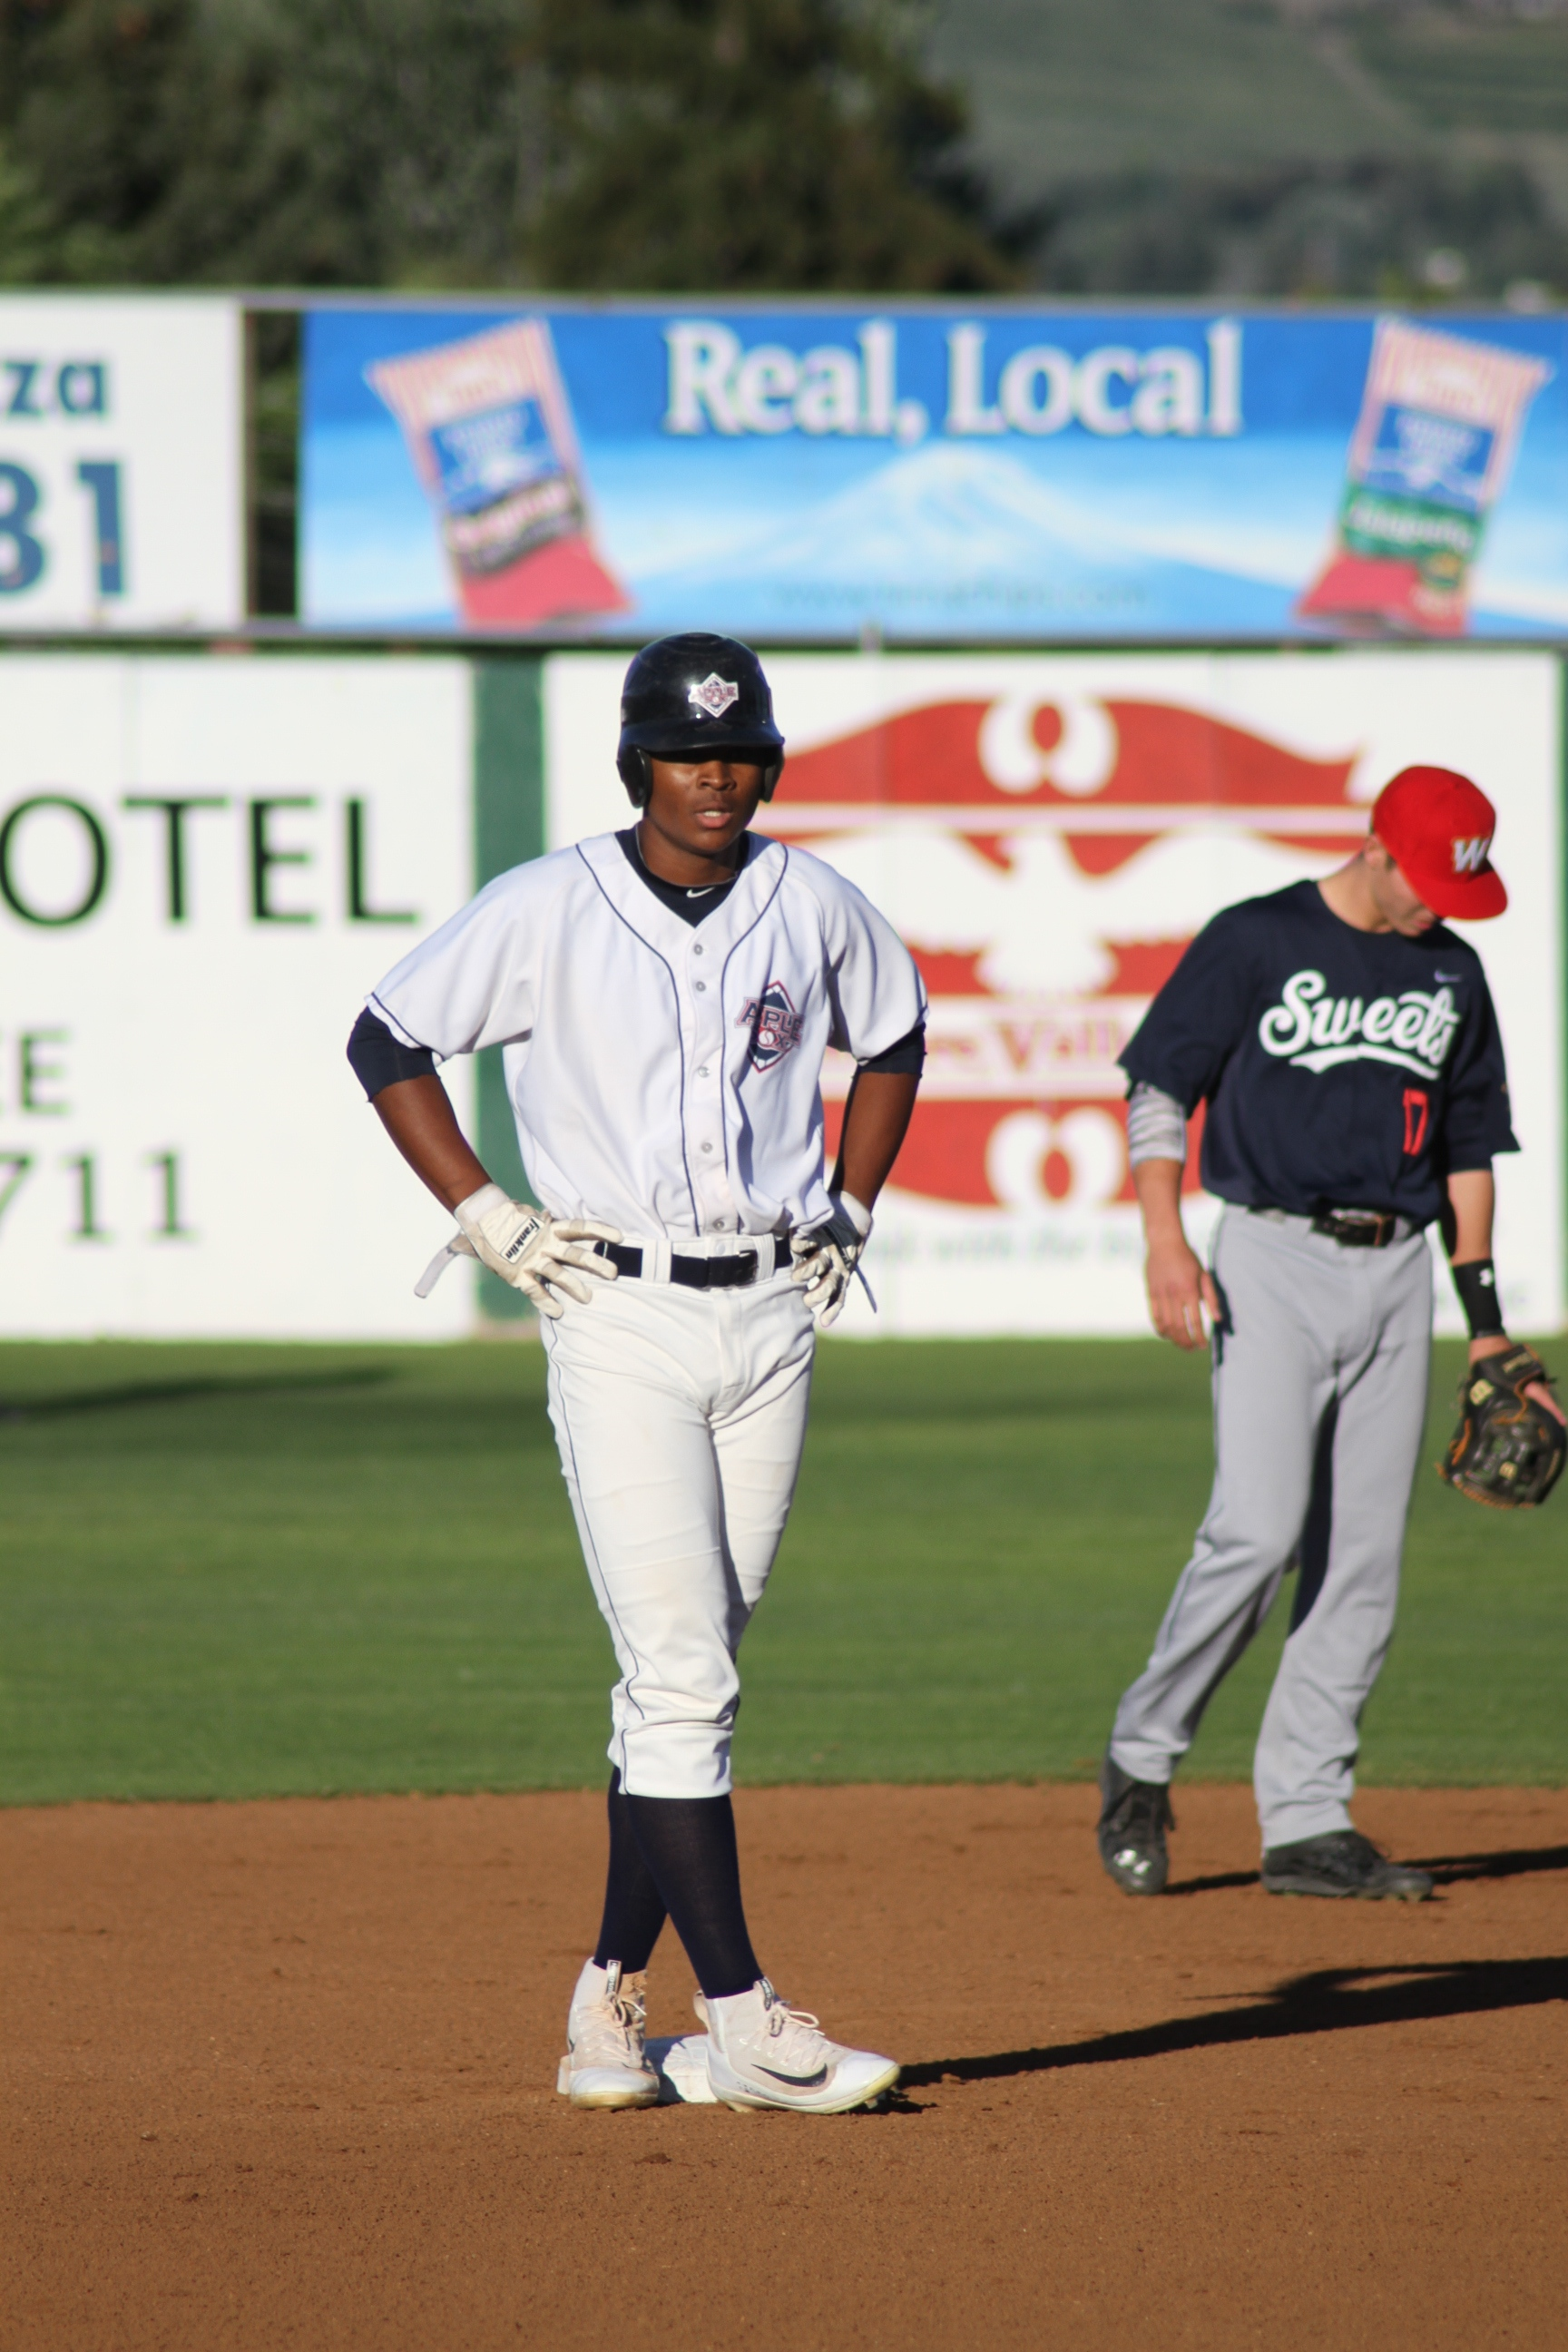 The AppleSox fell 8-4 Thursday night, but won their second-consecutive series during a nine-game homestand at Paul Thomas Sr. Stadium.